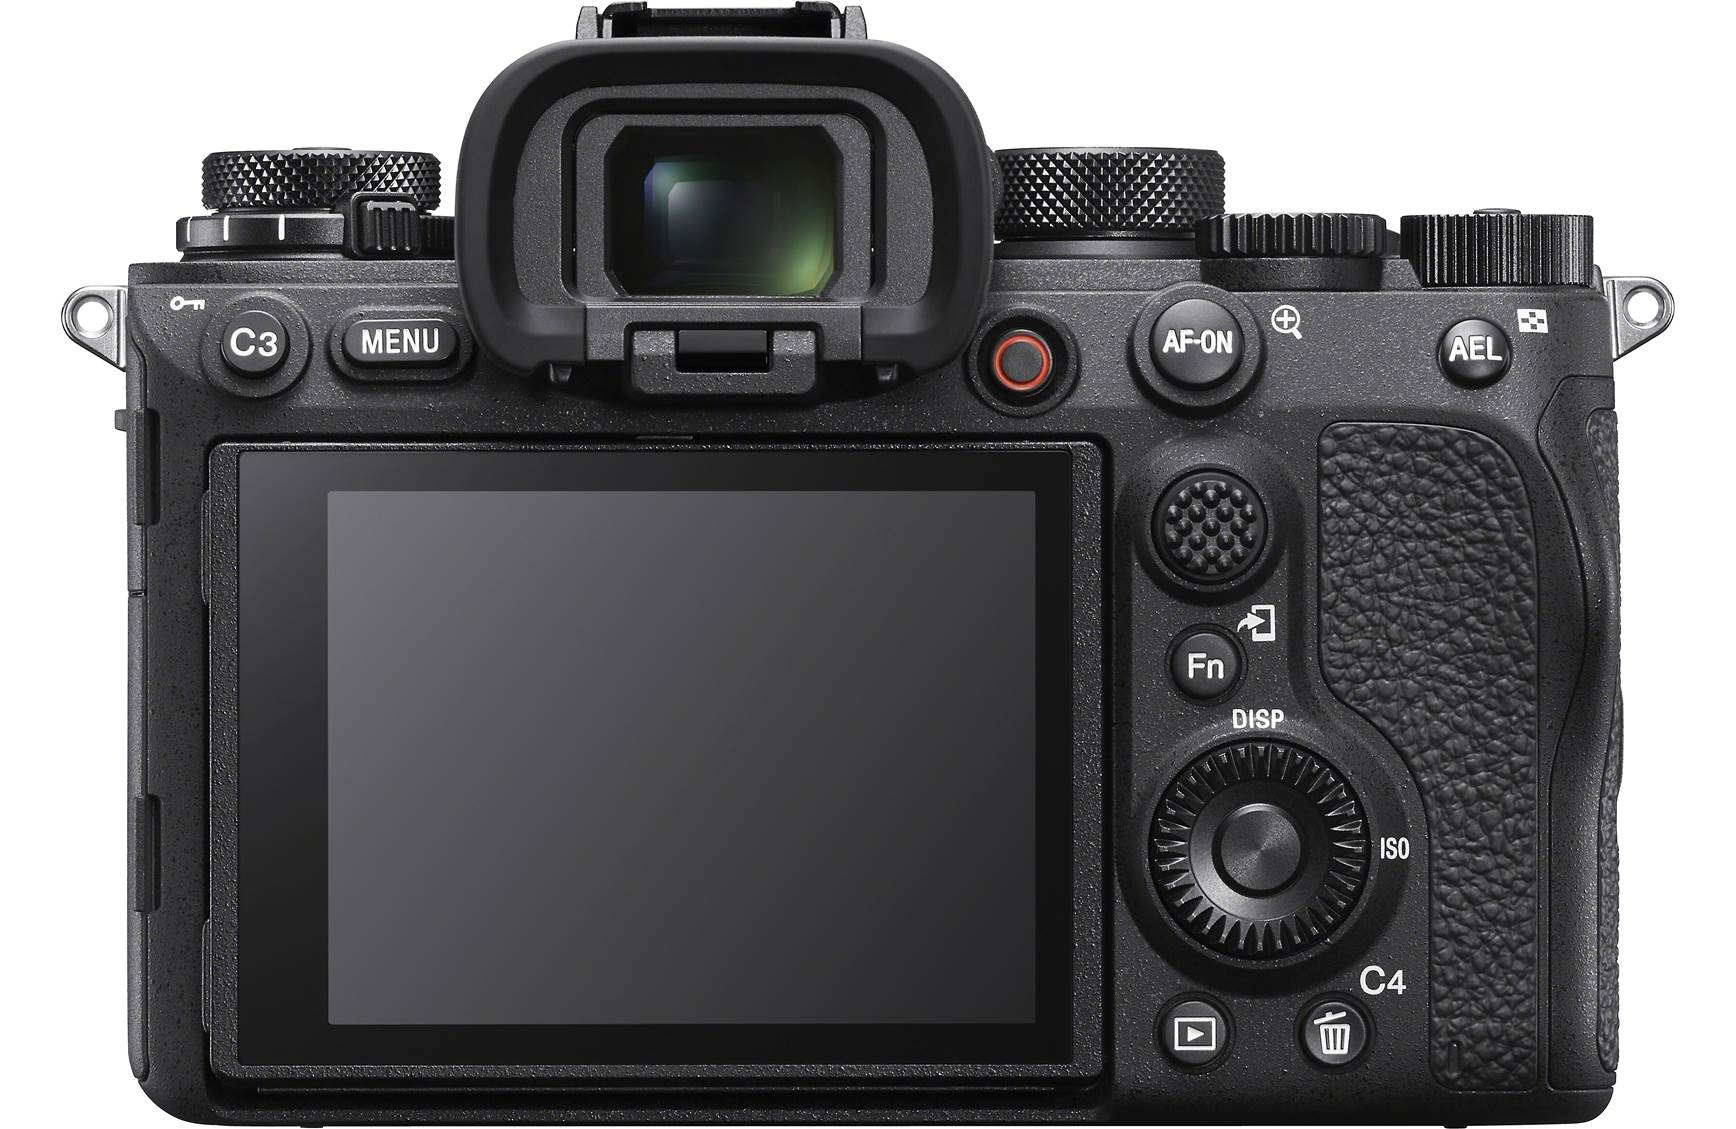 Sony A1 price, release date, and specs